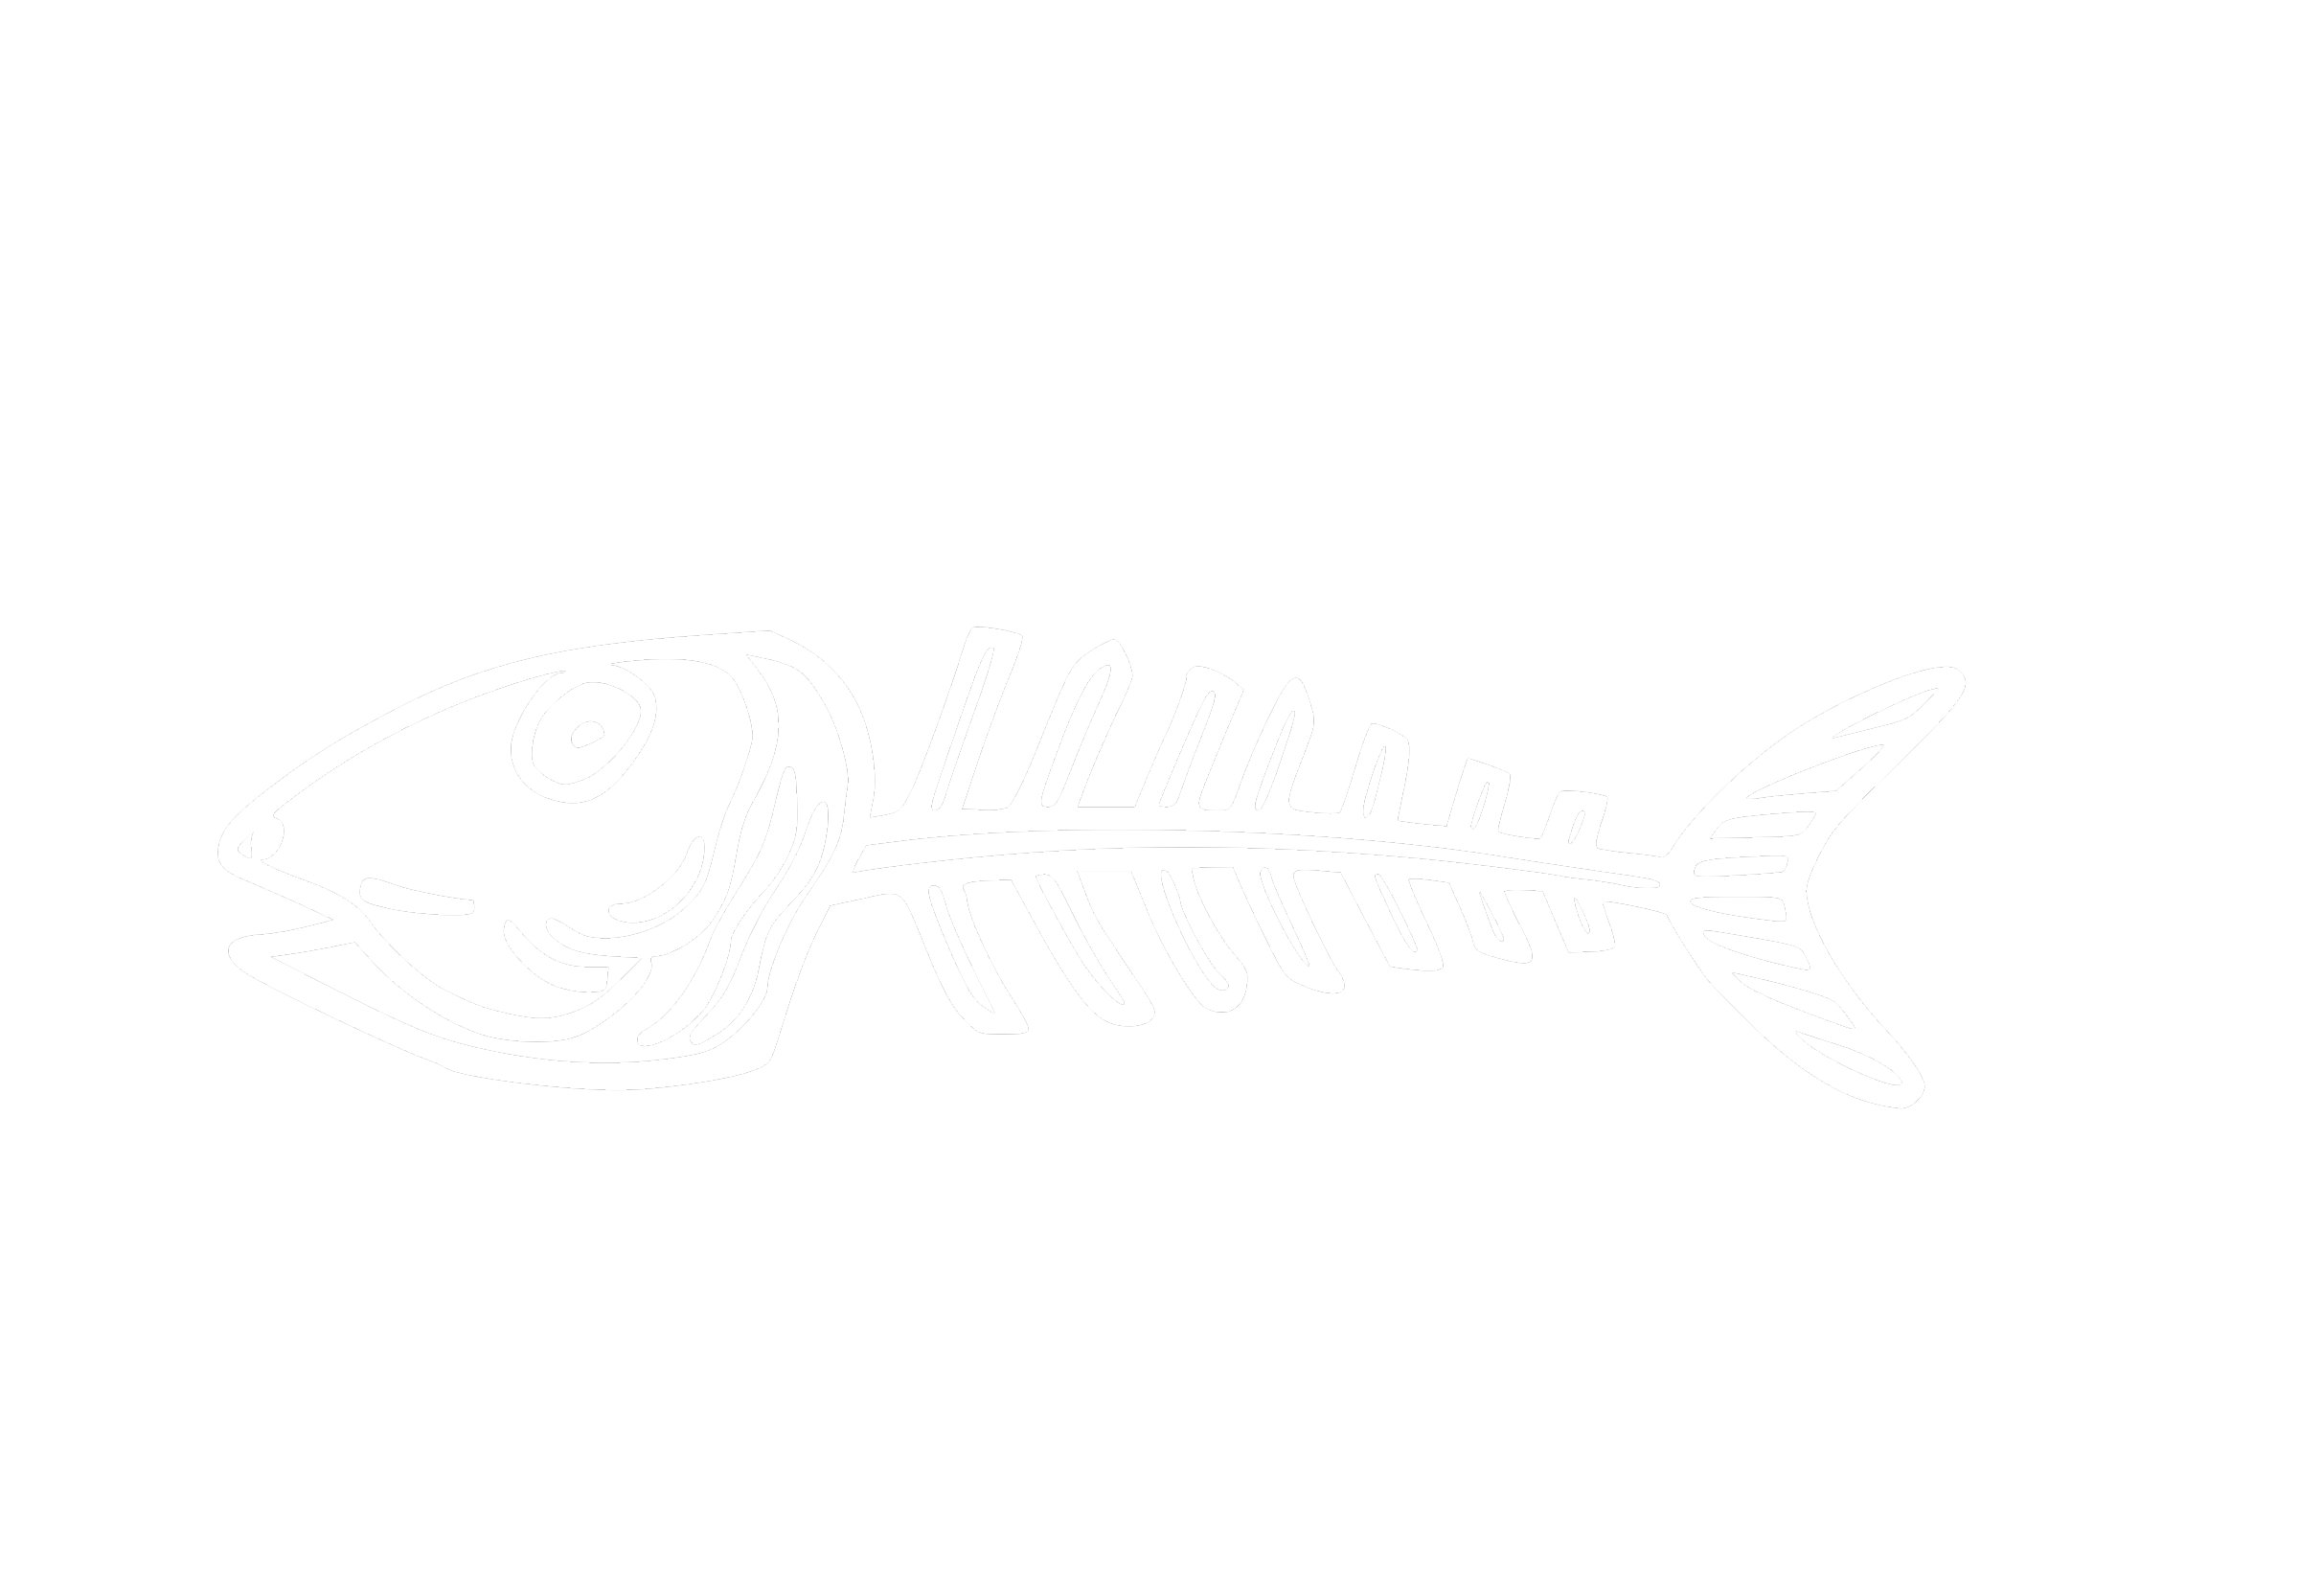 Logo for Dine Rewards, the loyalty program of Bonefish Grill.